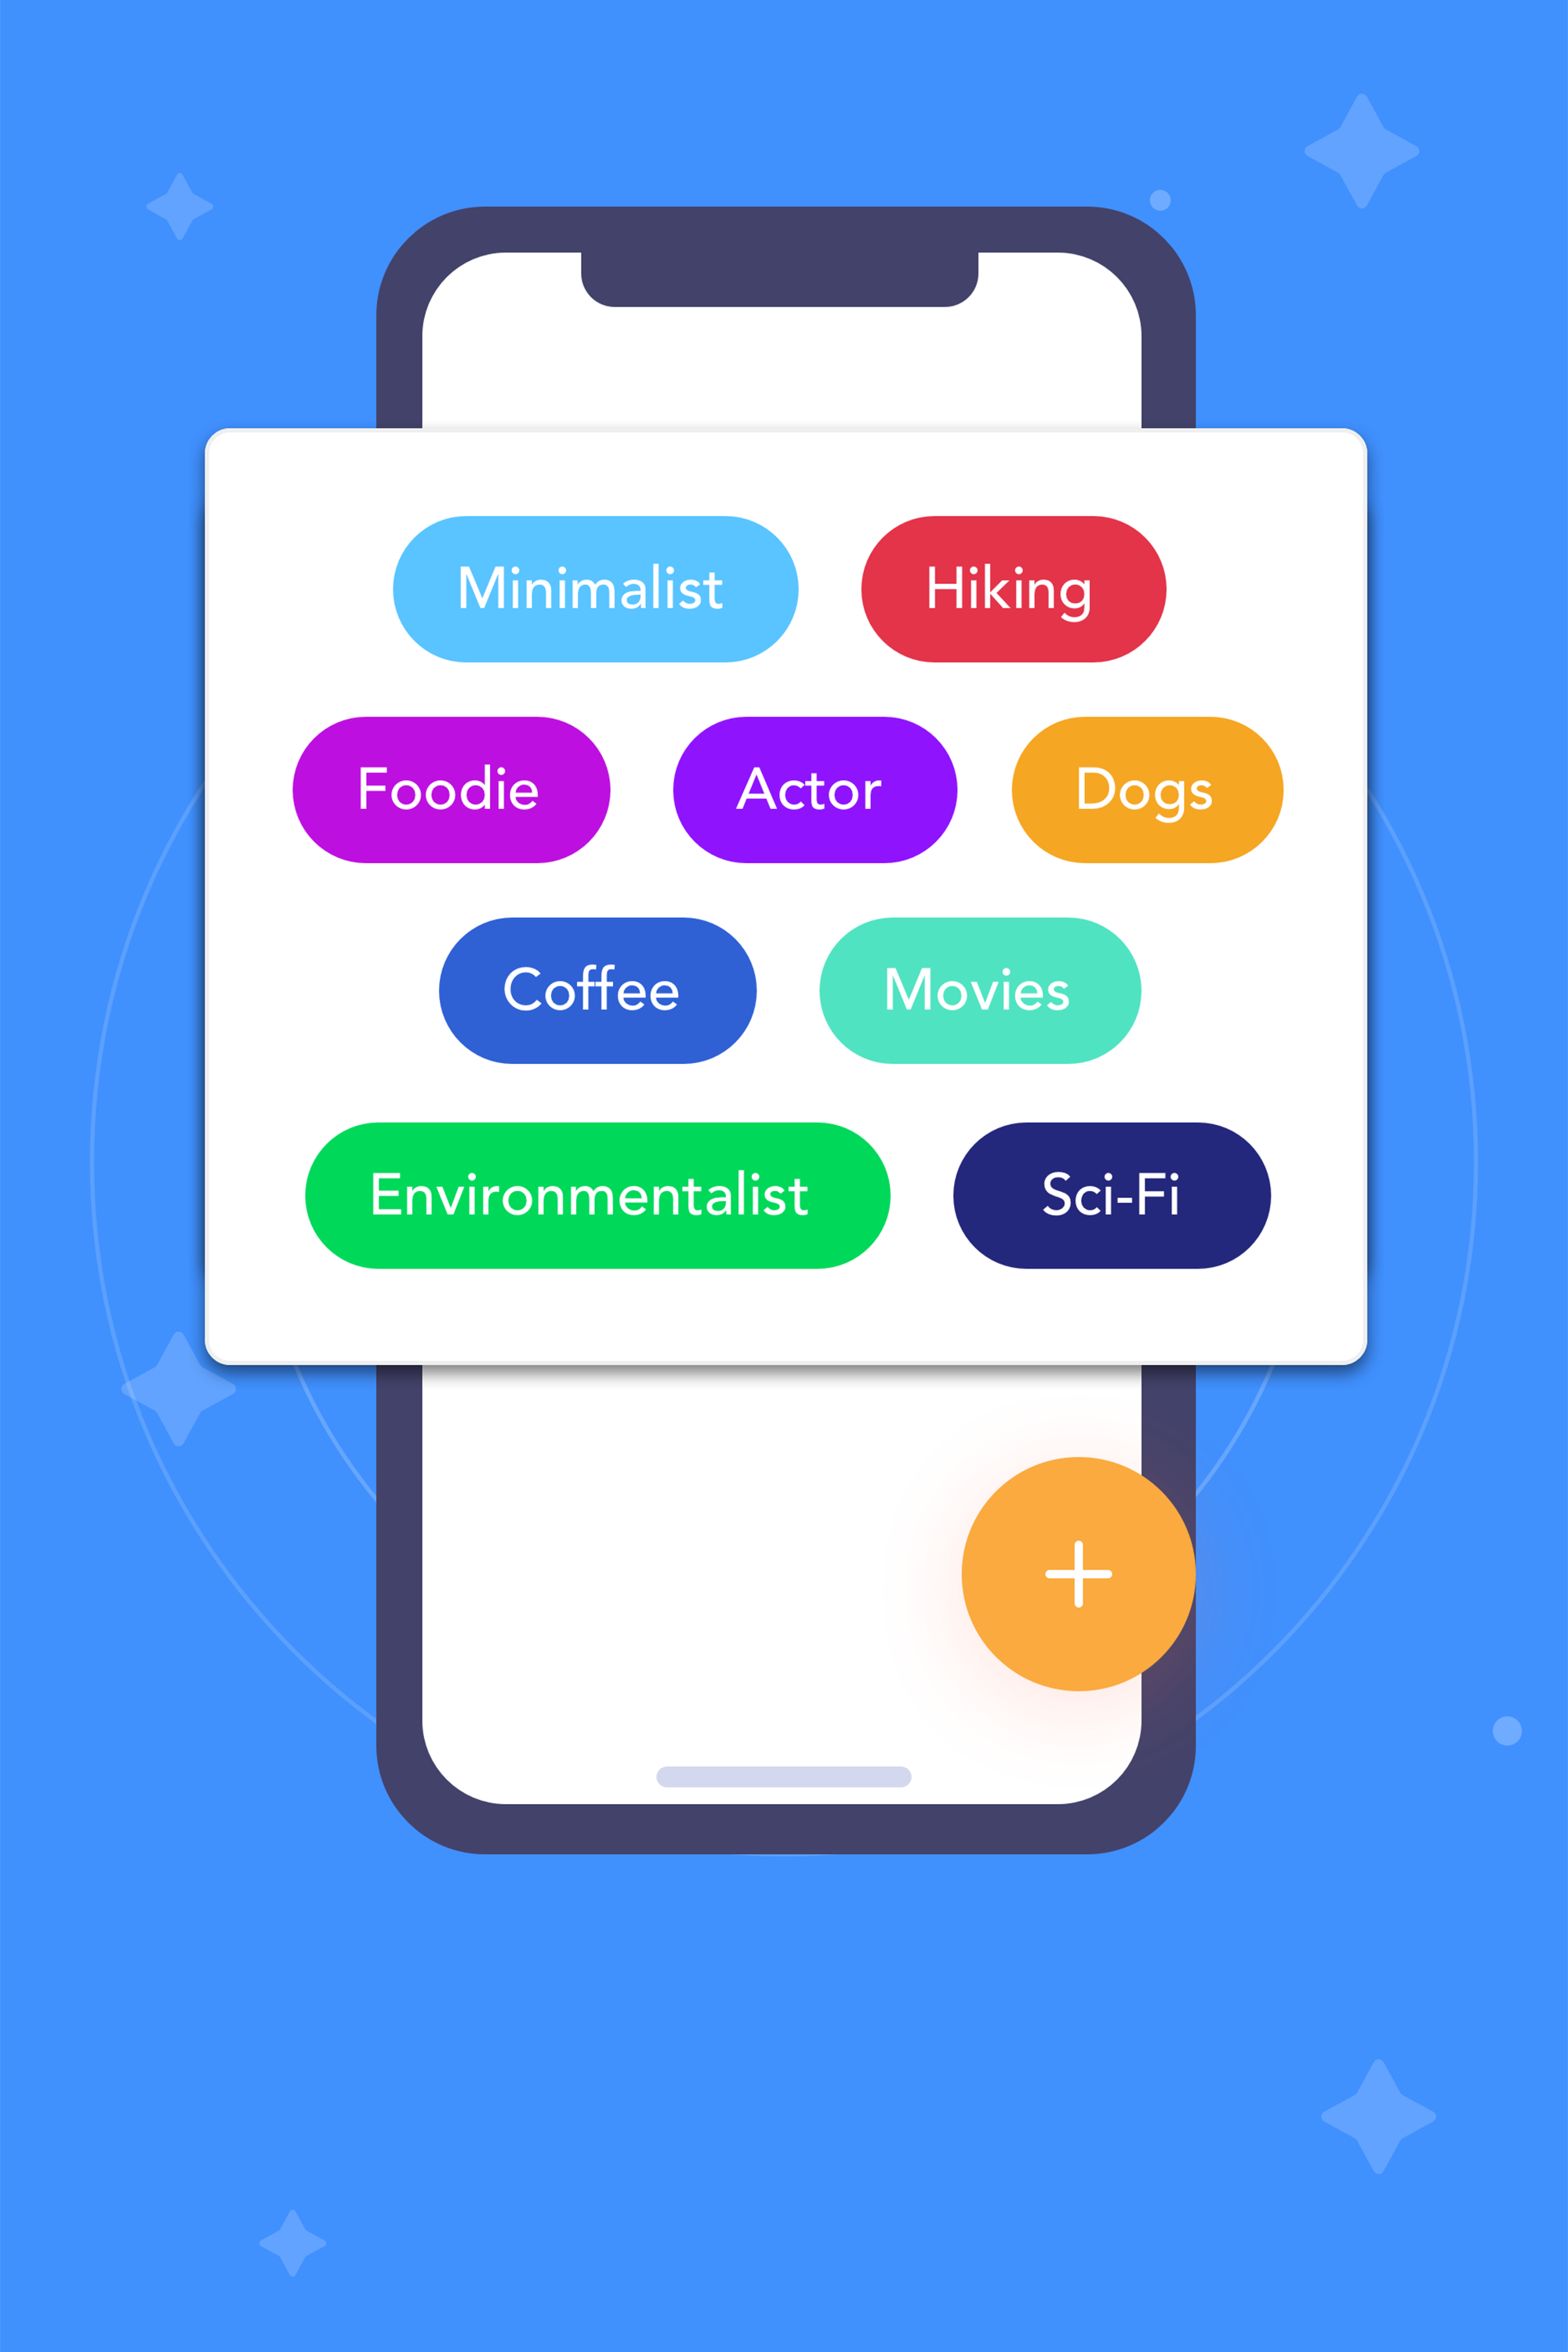 Group Friends - By using Tags, you can group your friends and create your own circles based on how you met them, what they are all about, and other shared interests, values, and traits.